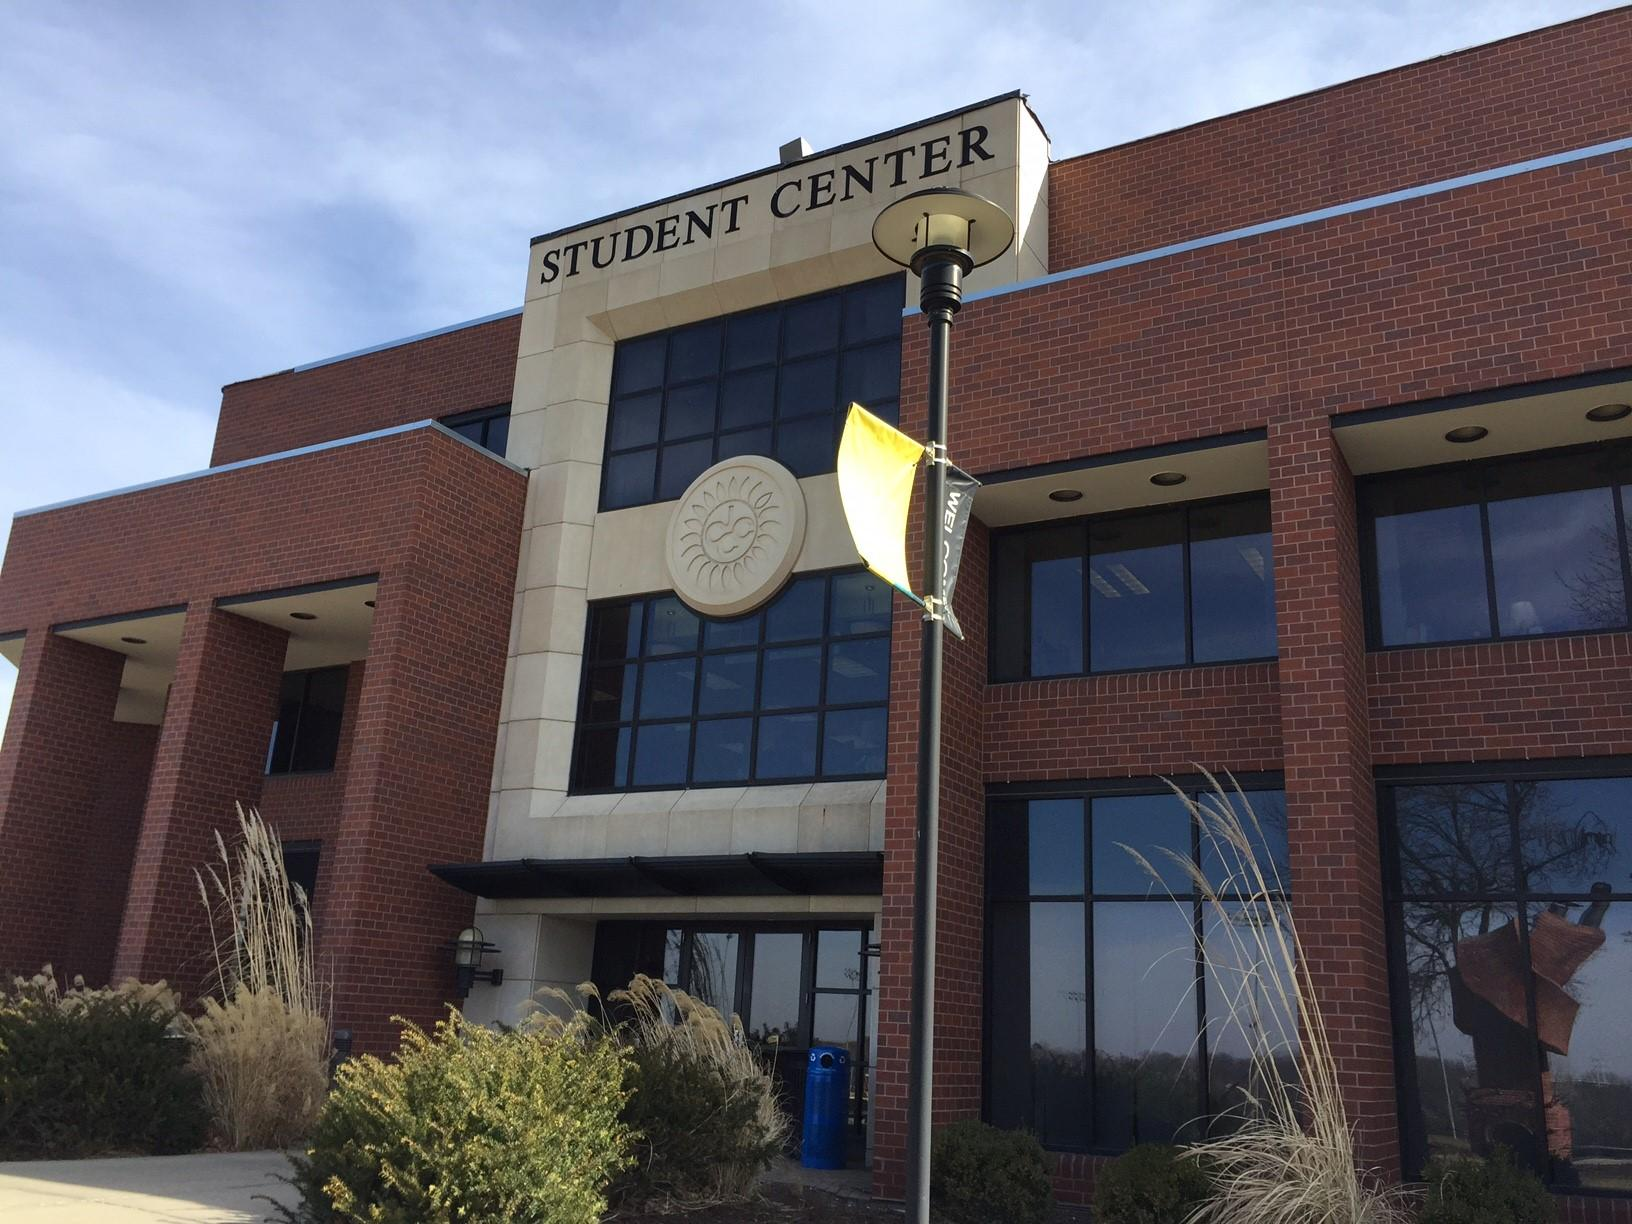 Kansas johnson county real estate taxes - Johnson County Community College Says It Will Hold The Line On Tuition For Next School Year Kansas Board Of Regents Schools Are Stuck In The Budgeting